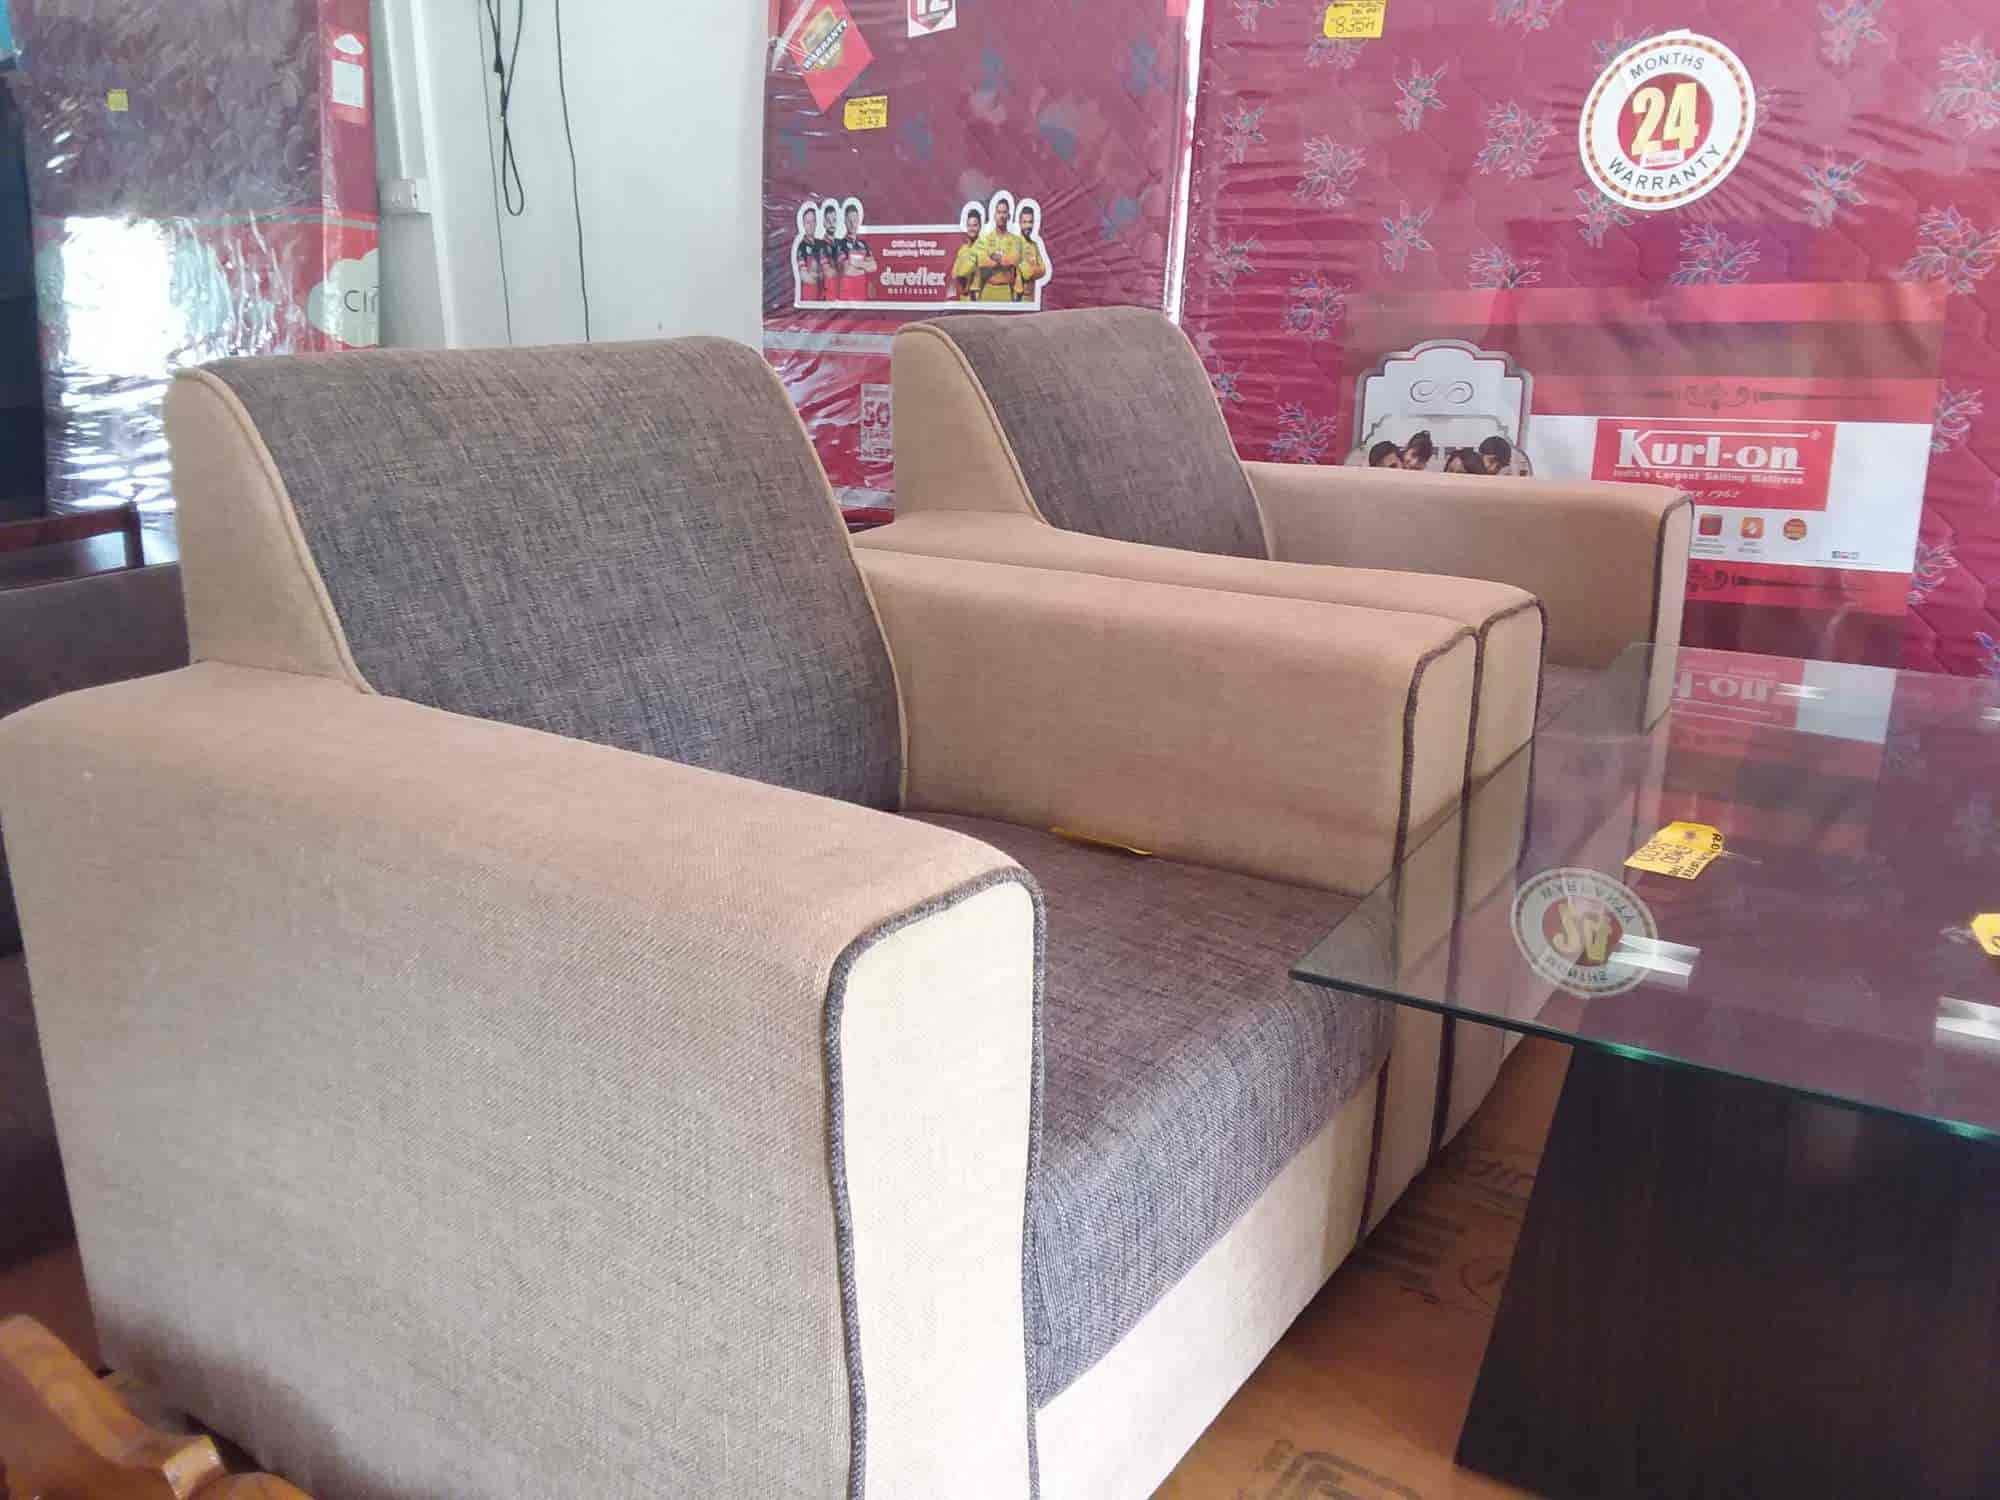 Sunny furniture photos udupi pictures images gallery justdial